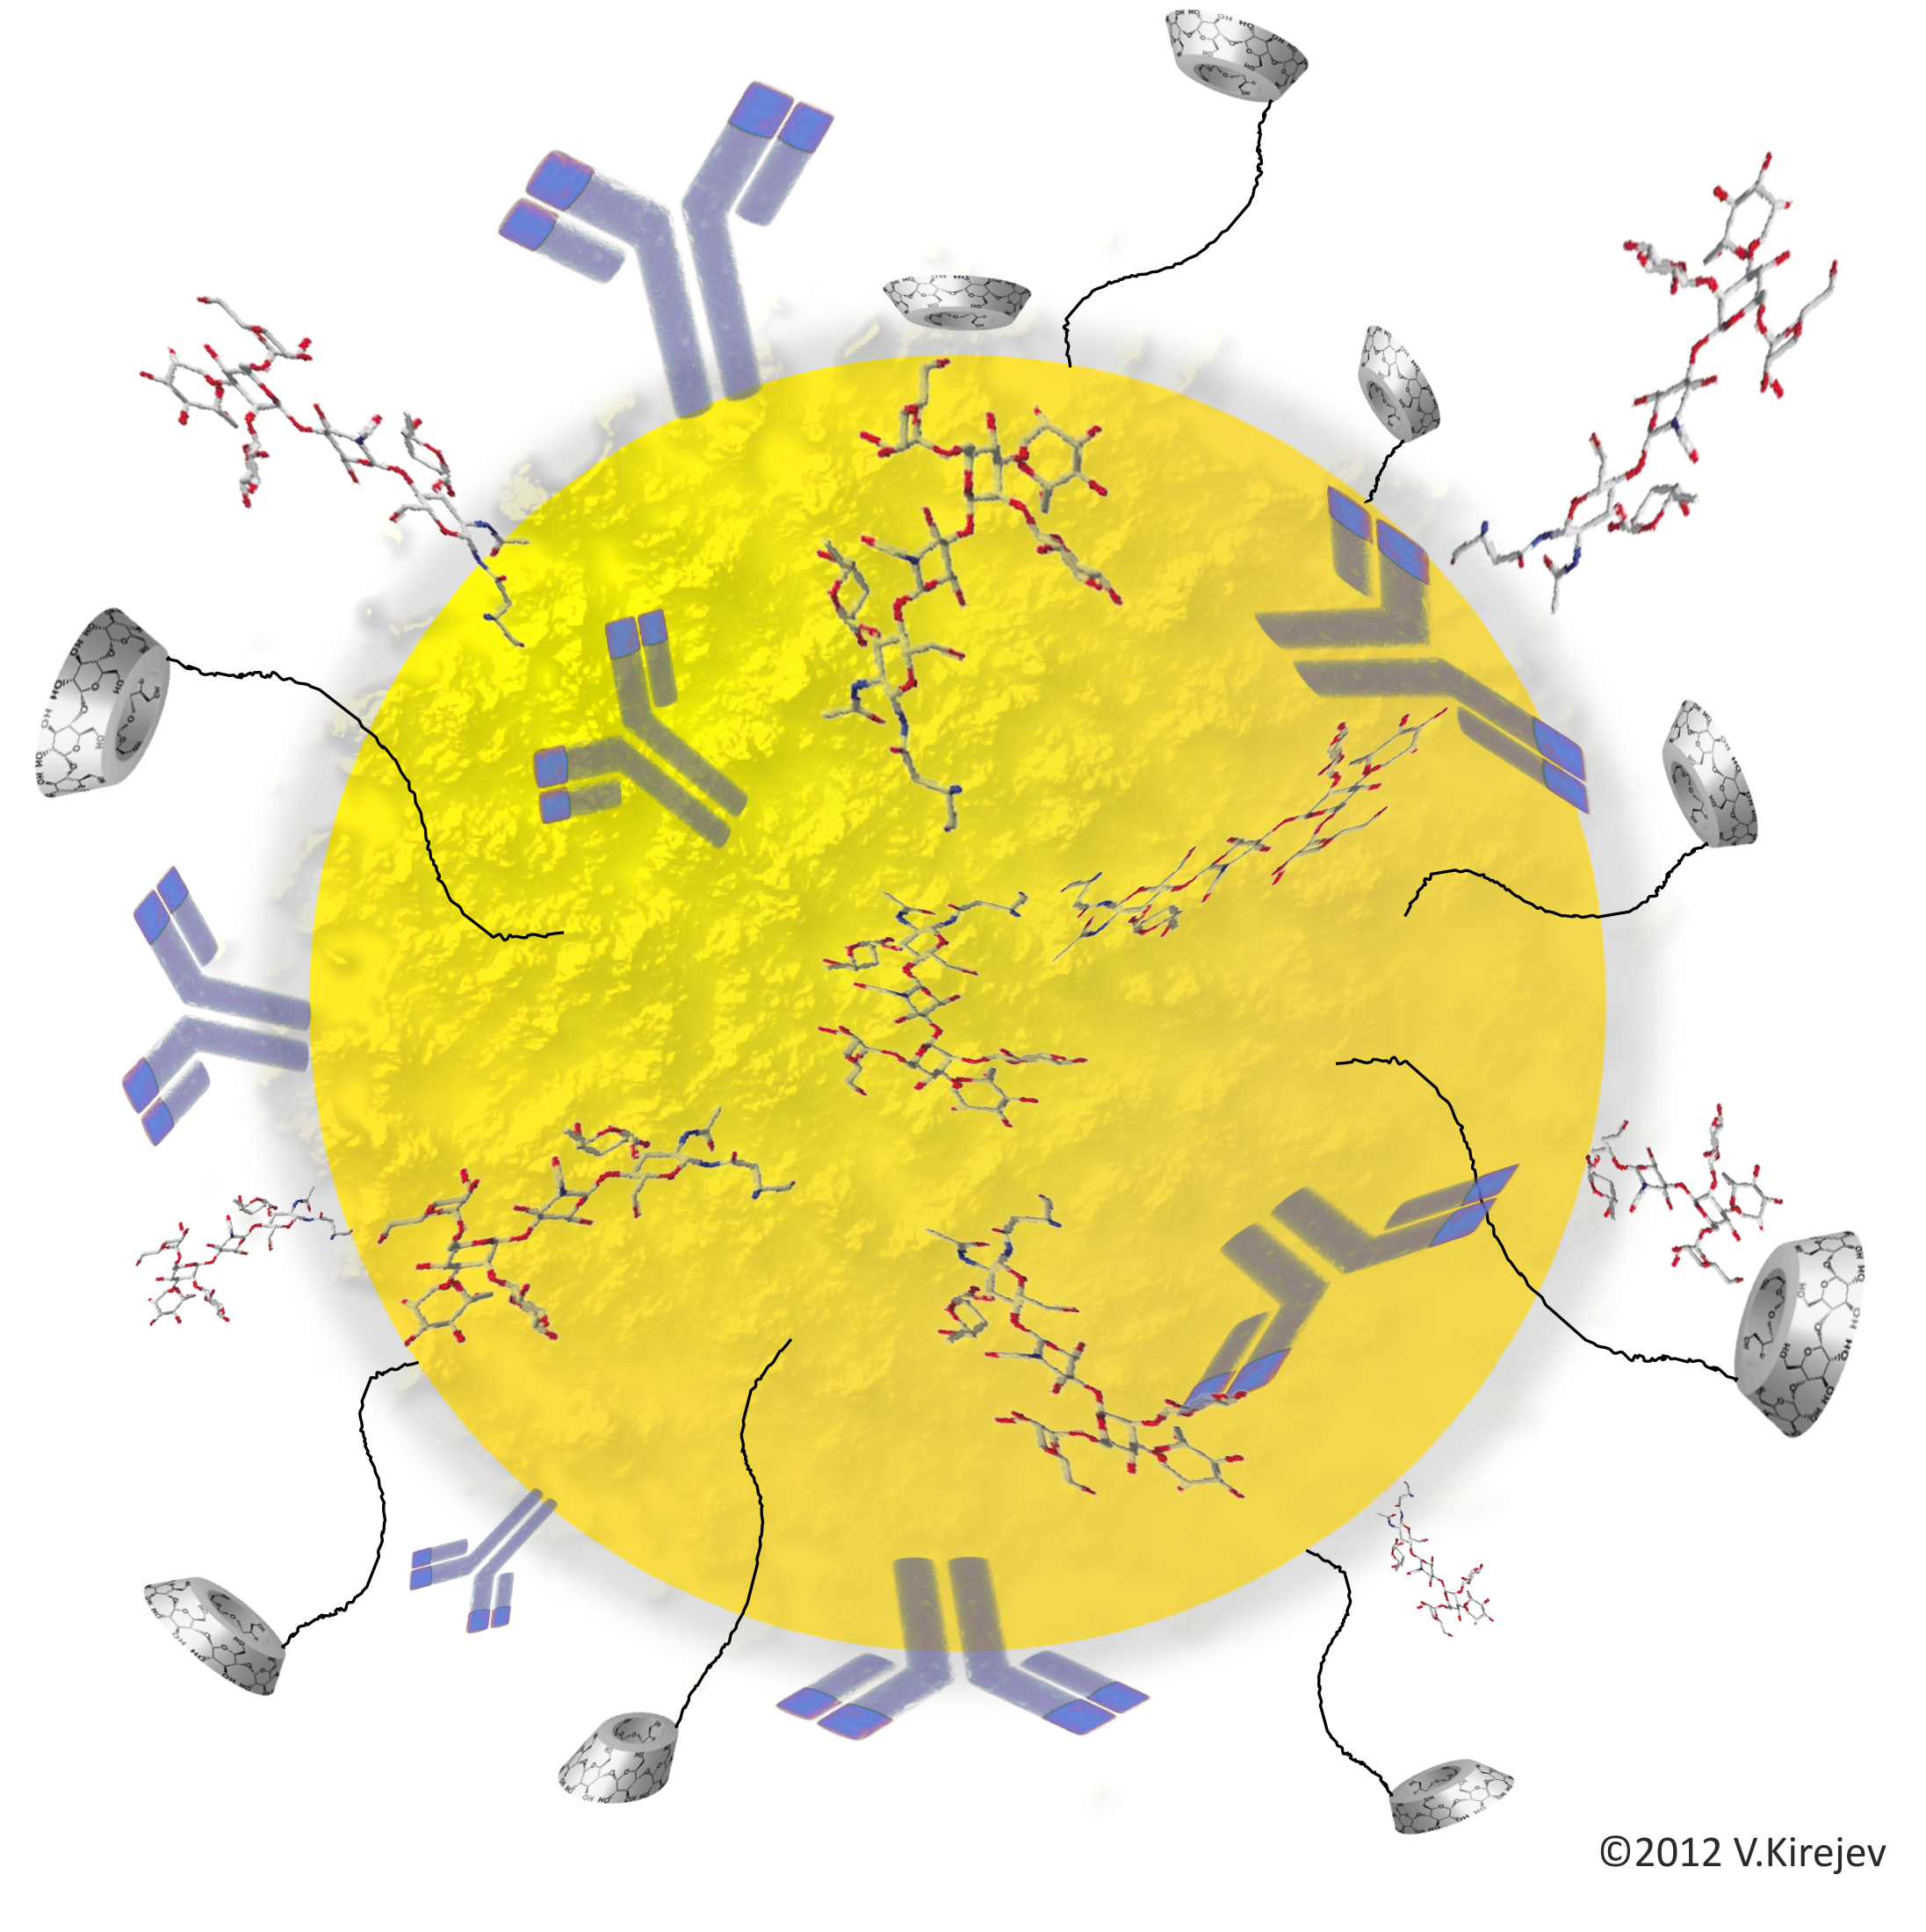 TSR Functionalized gold nanoparticles